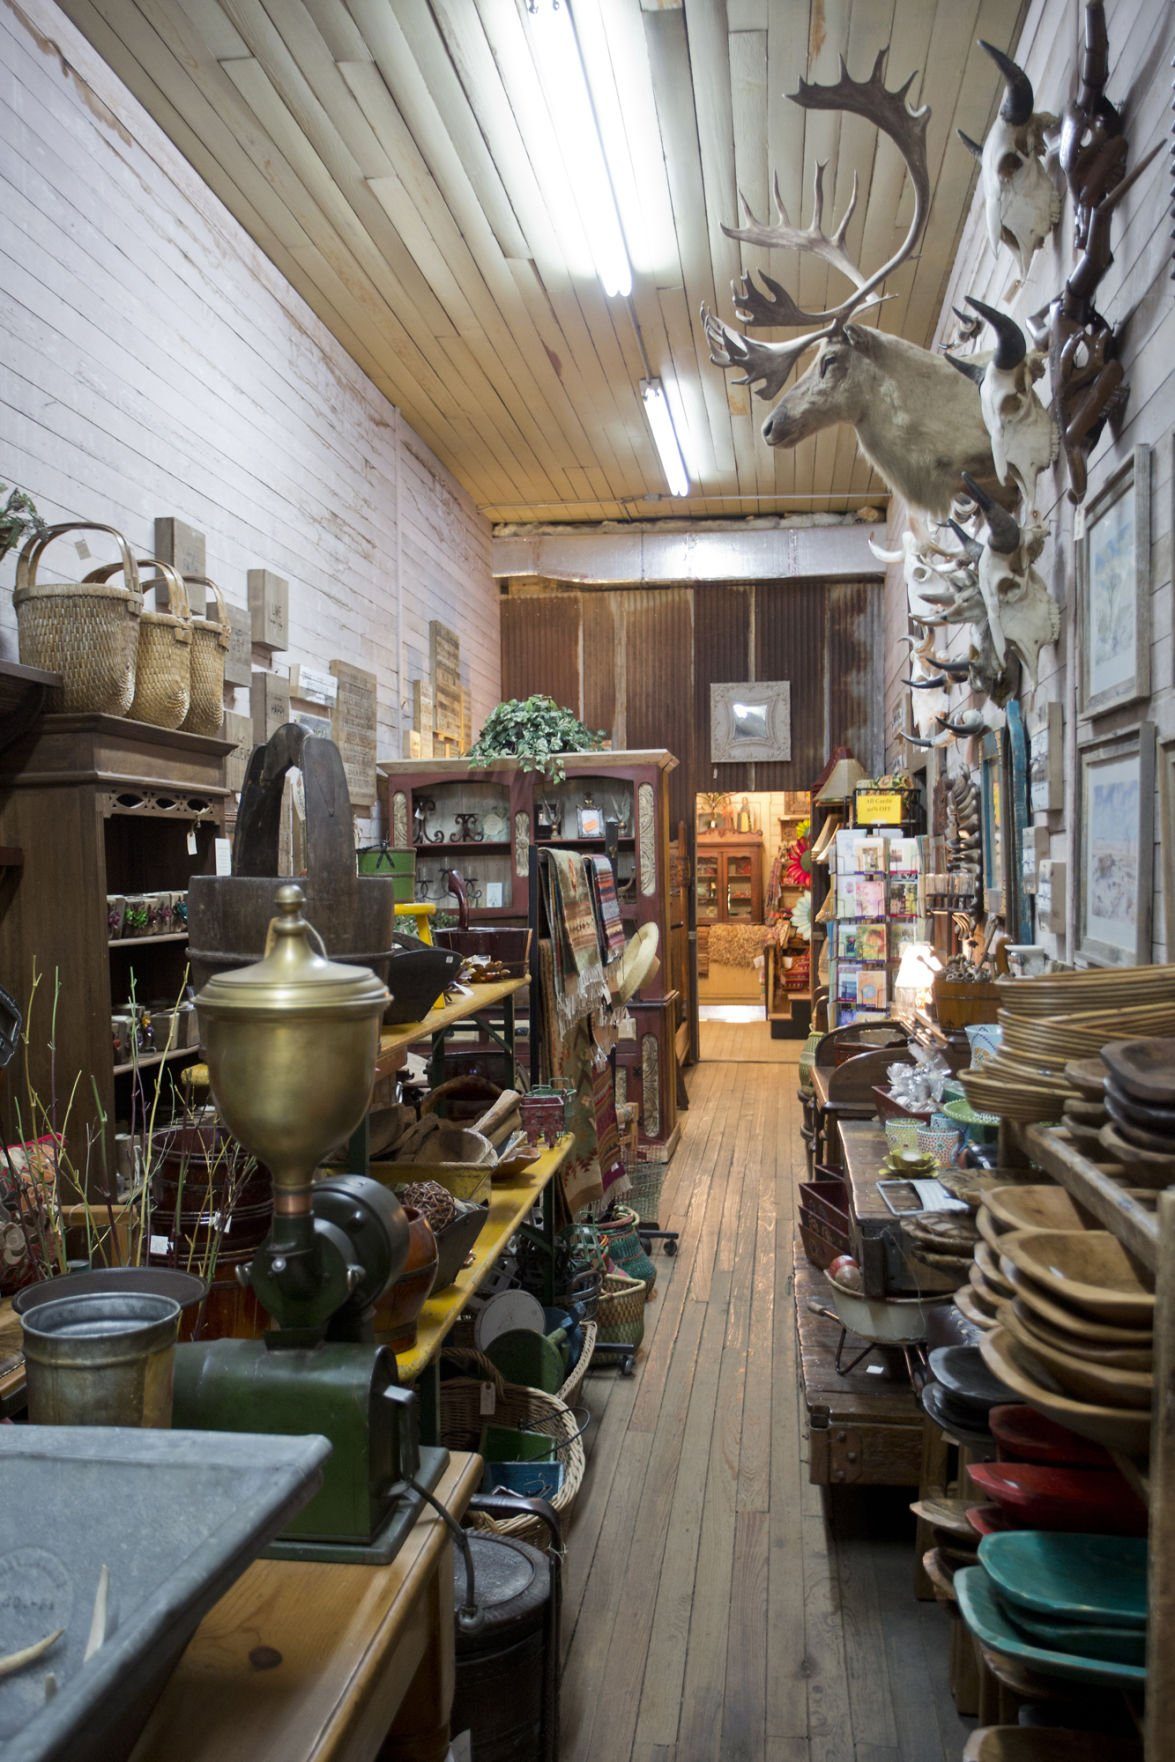 Third generation of family keeps hardware store current